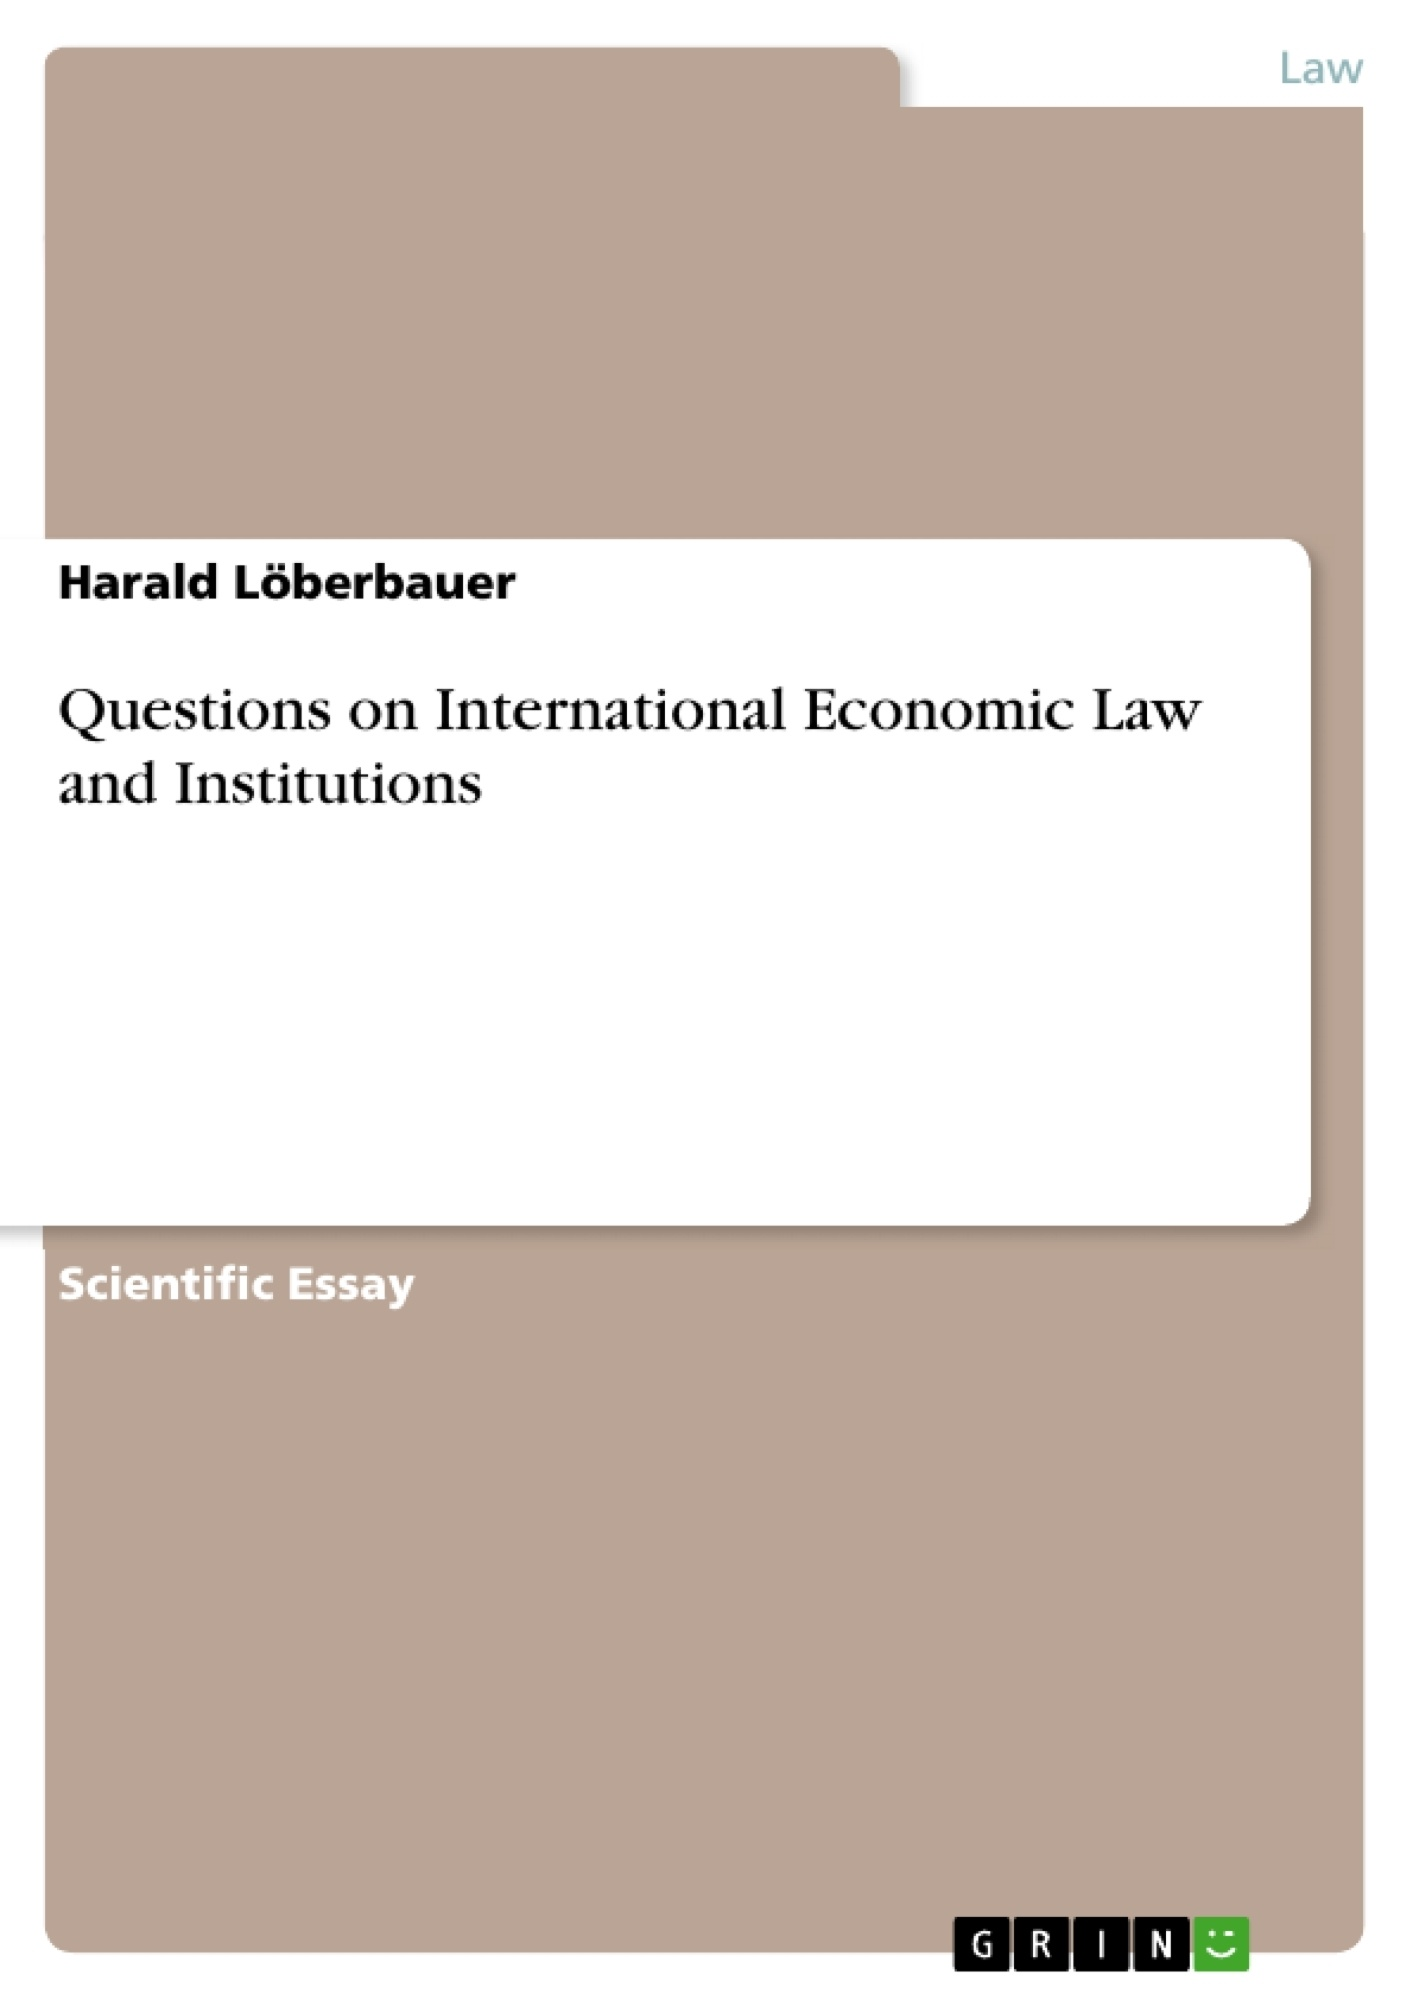 questions on international economic law and institutions publish upload your own papers earn money and win an iphone 7